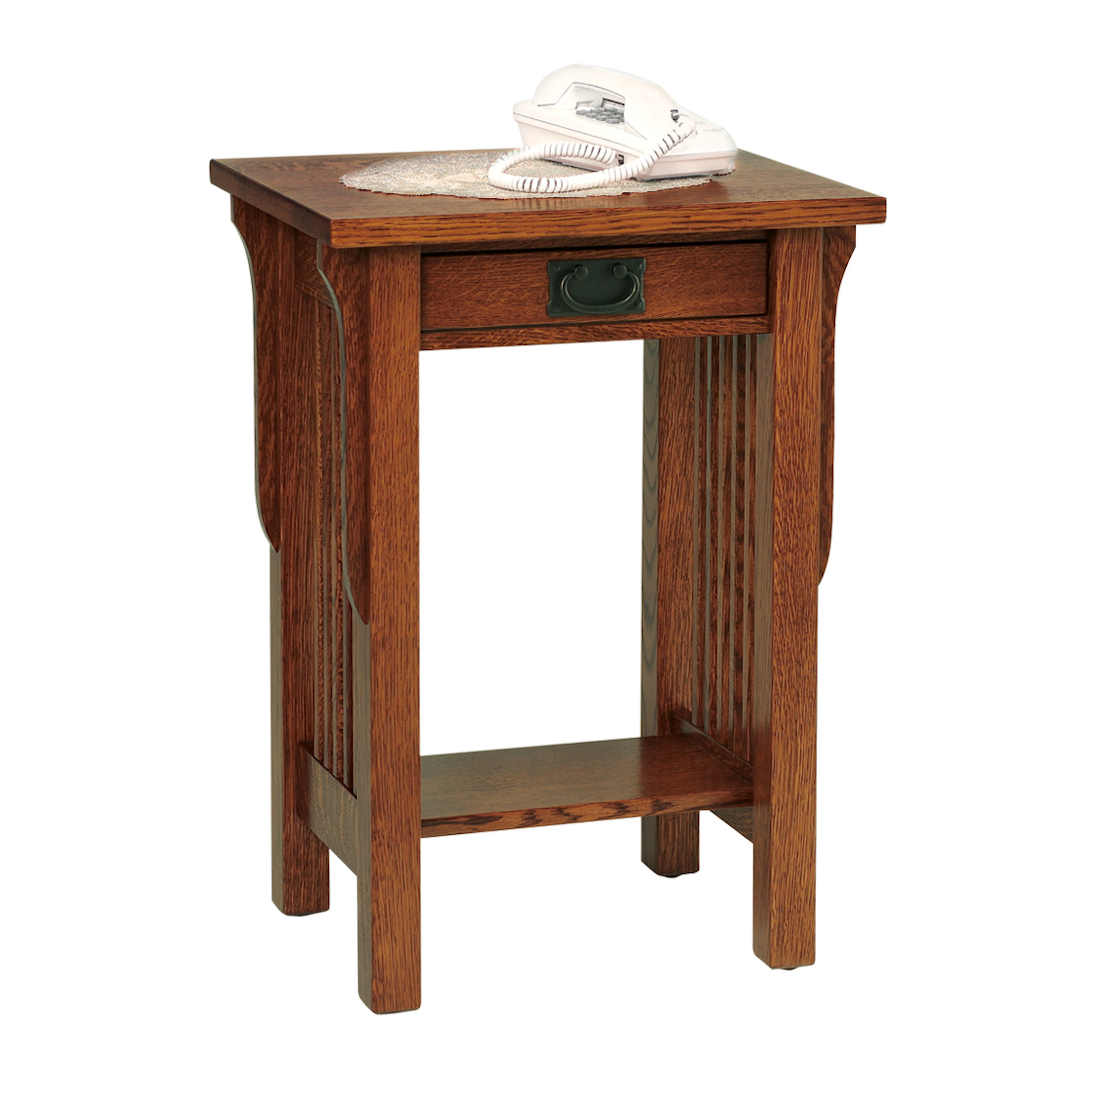 Landmark Occasional Tables LM1621PH Telephone Stand